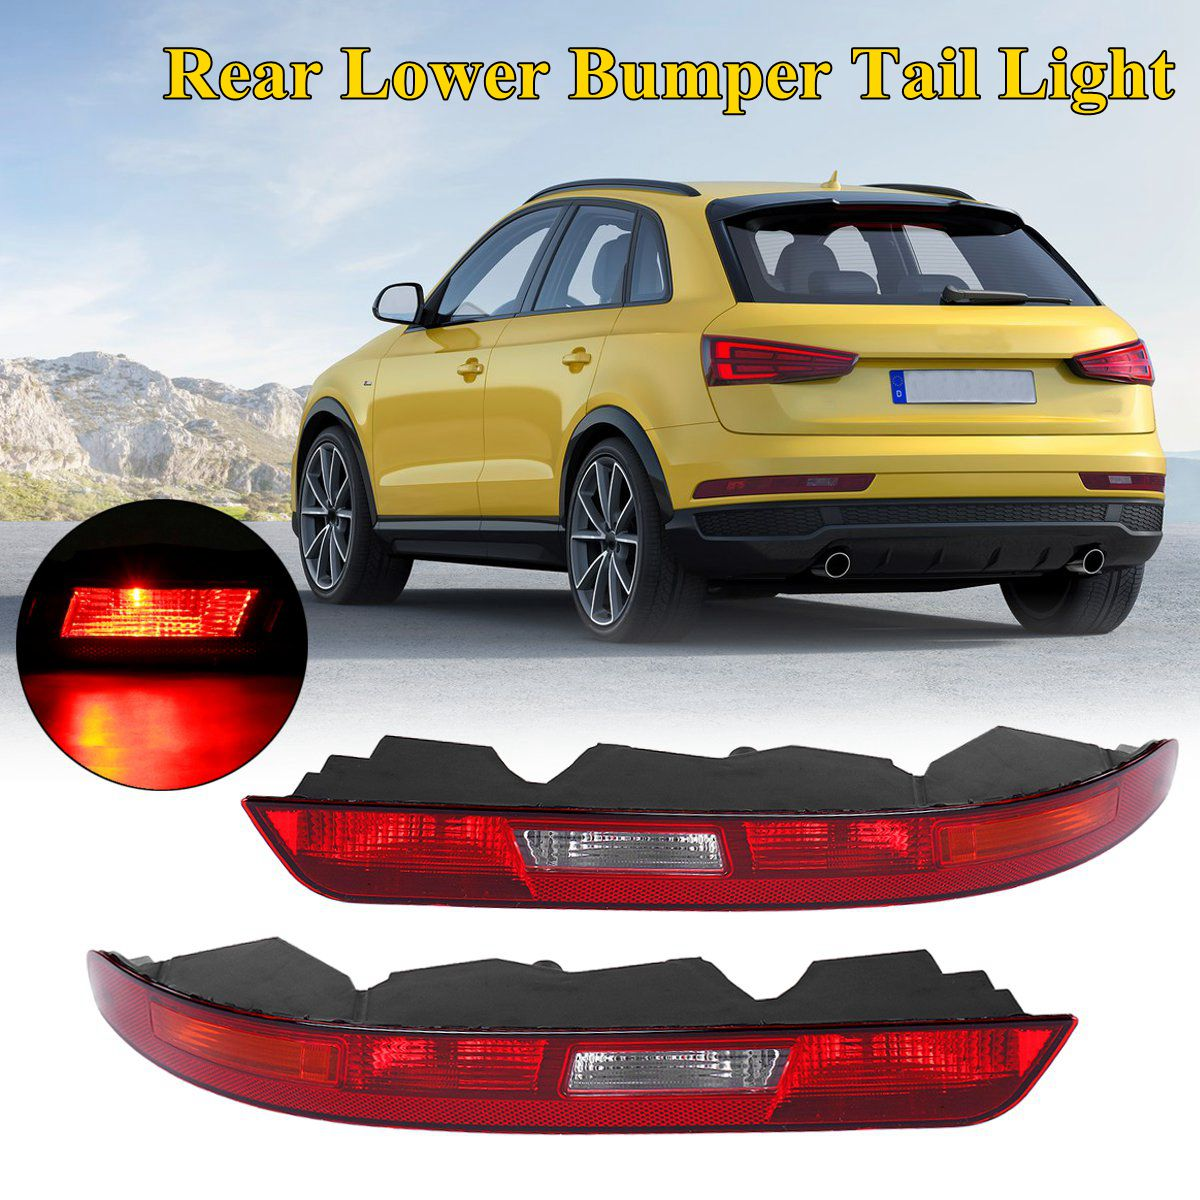 For AUDI Q3 2016 2017 2018 New Left/Right Rear Lower Bumper Fog Light Tail Lights Red Side Tail Light Lower Bumper Tail Lamp external rear taillights bumper left right side fog lights lamp assembly house holder for jeep grand cherokee replacement parts